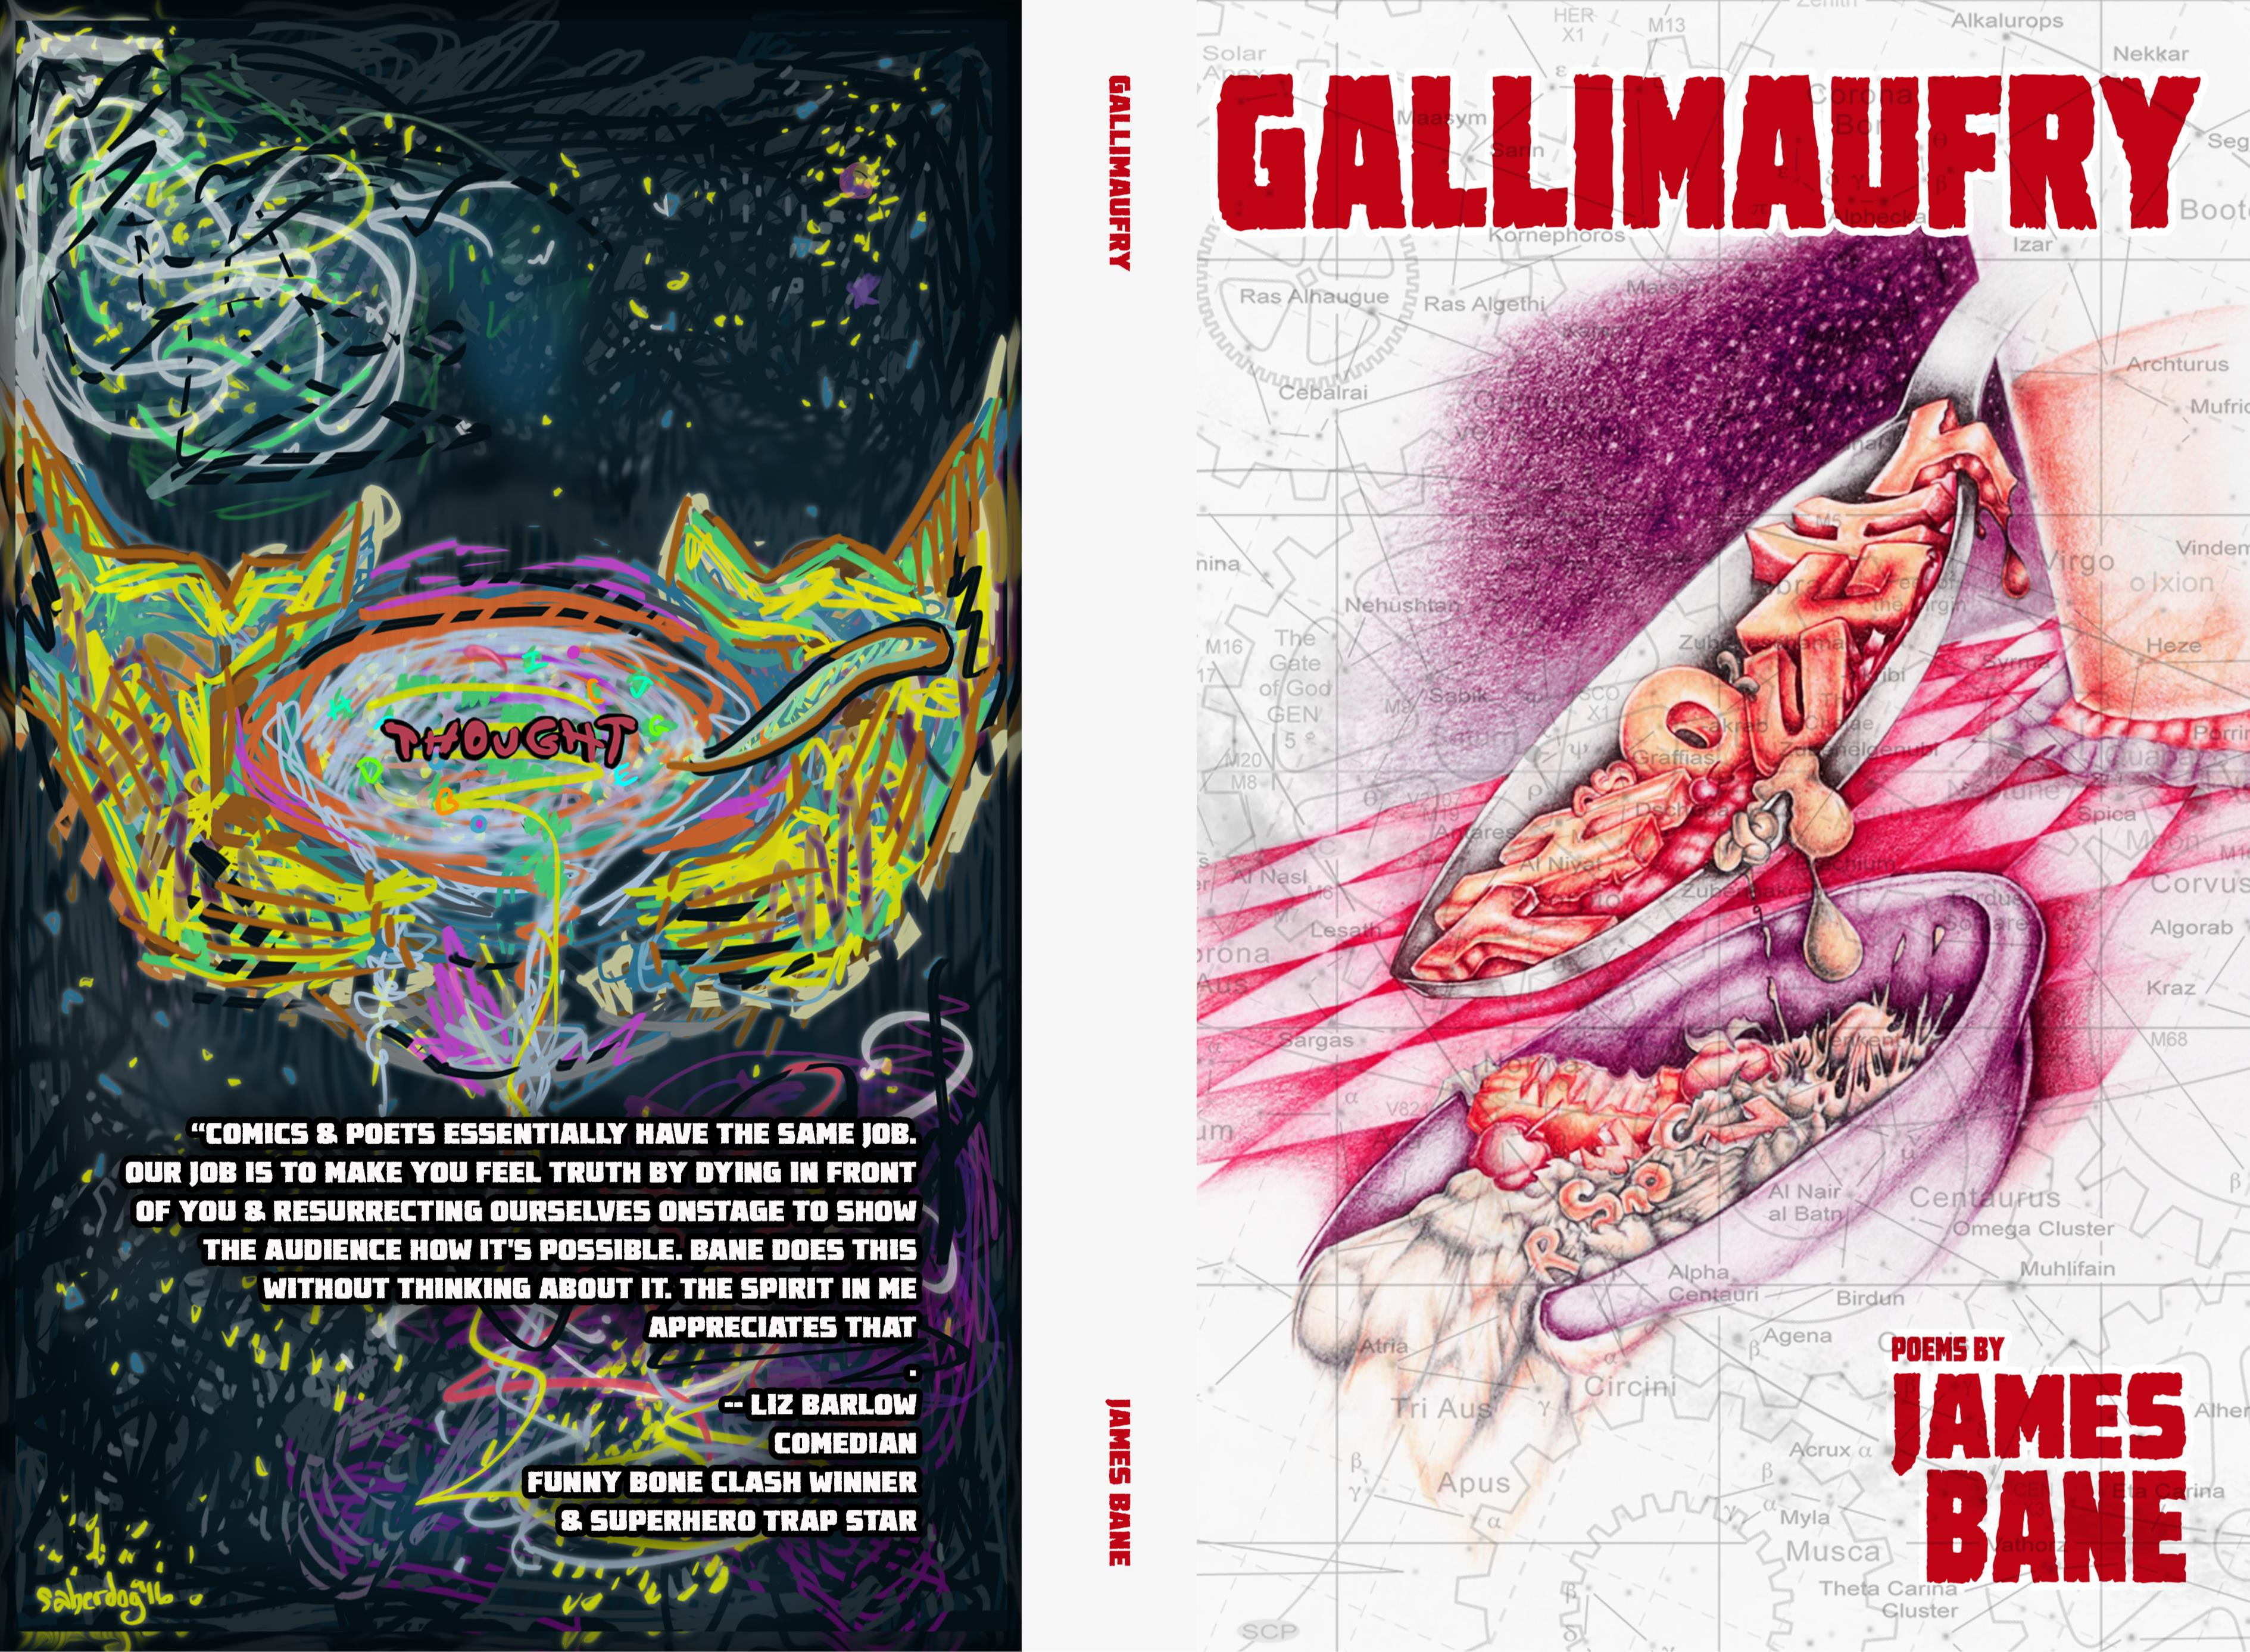 Gallimaufry cover image